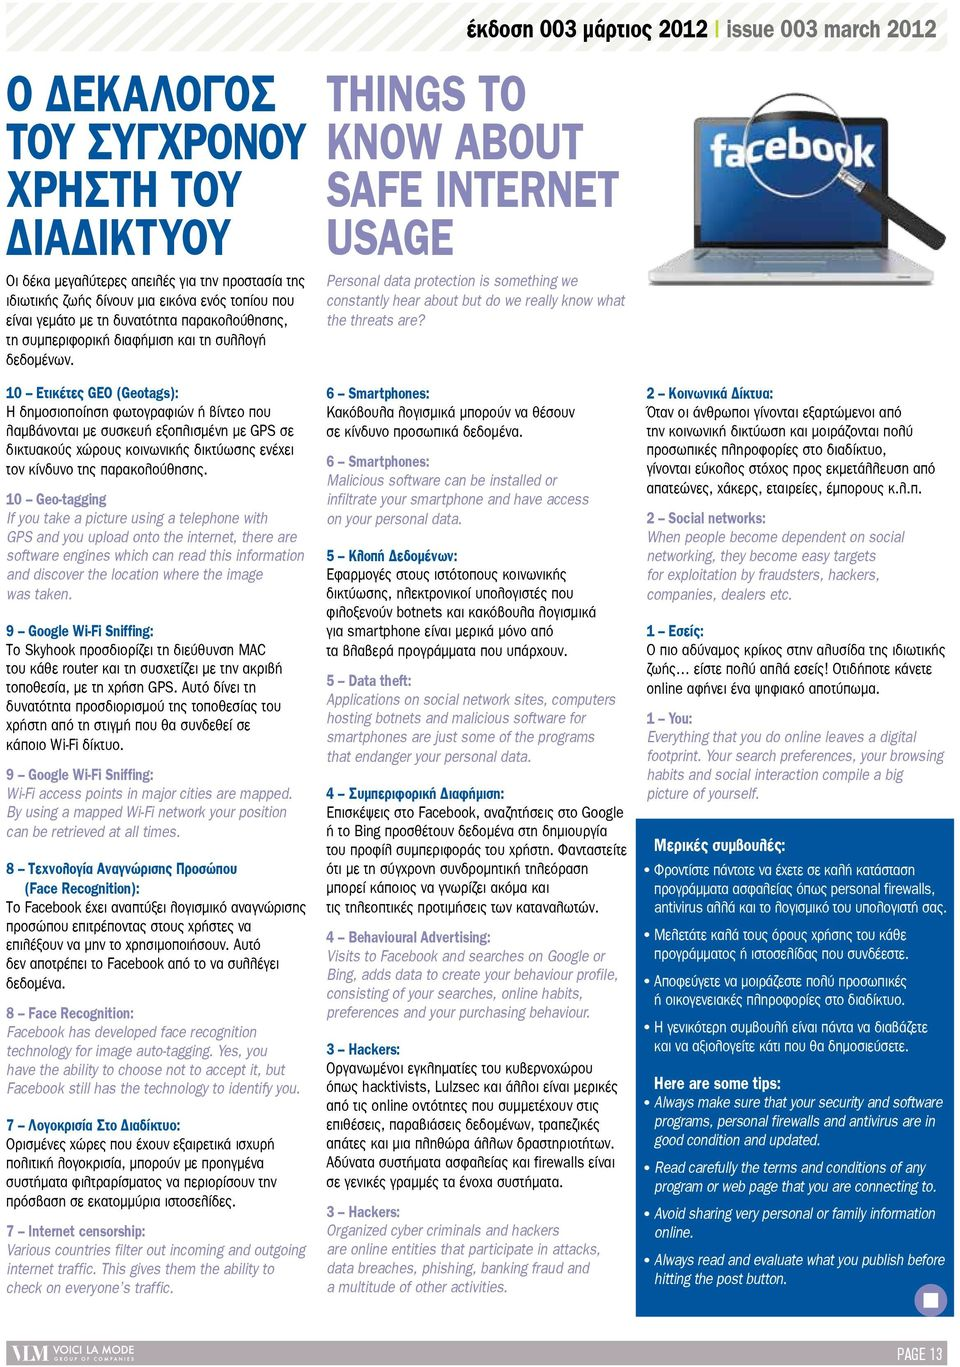 έκδοση 003 μάρτιος 2012 issue 003 march 2012 THINGS TO KNOW ABOUT SAFE INTERNET USAGE Personal data protection is something we constantly hear about but do we really know what the threats are?